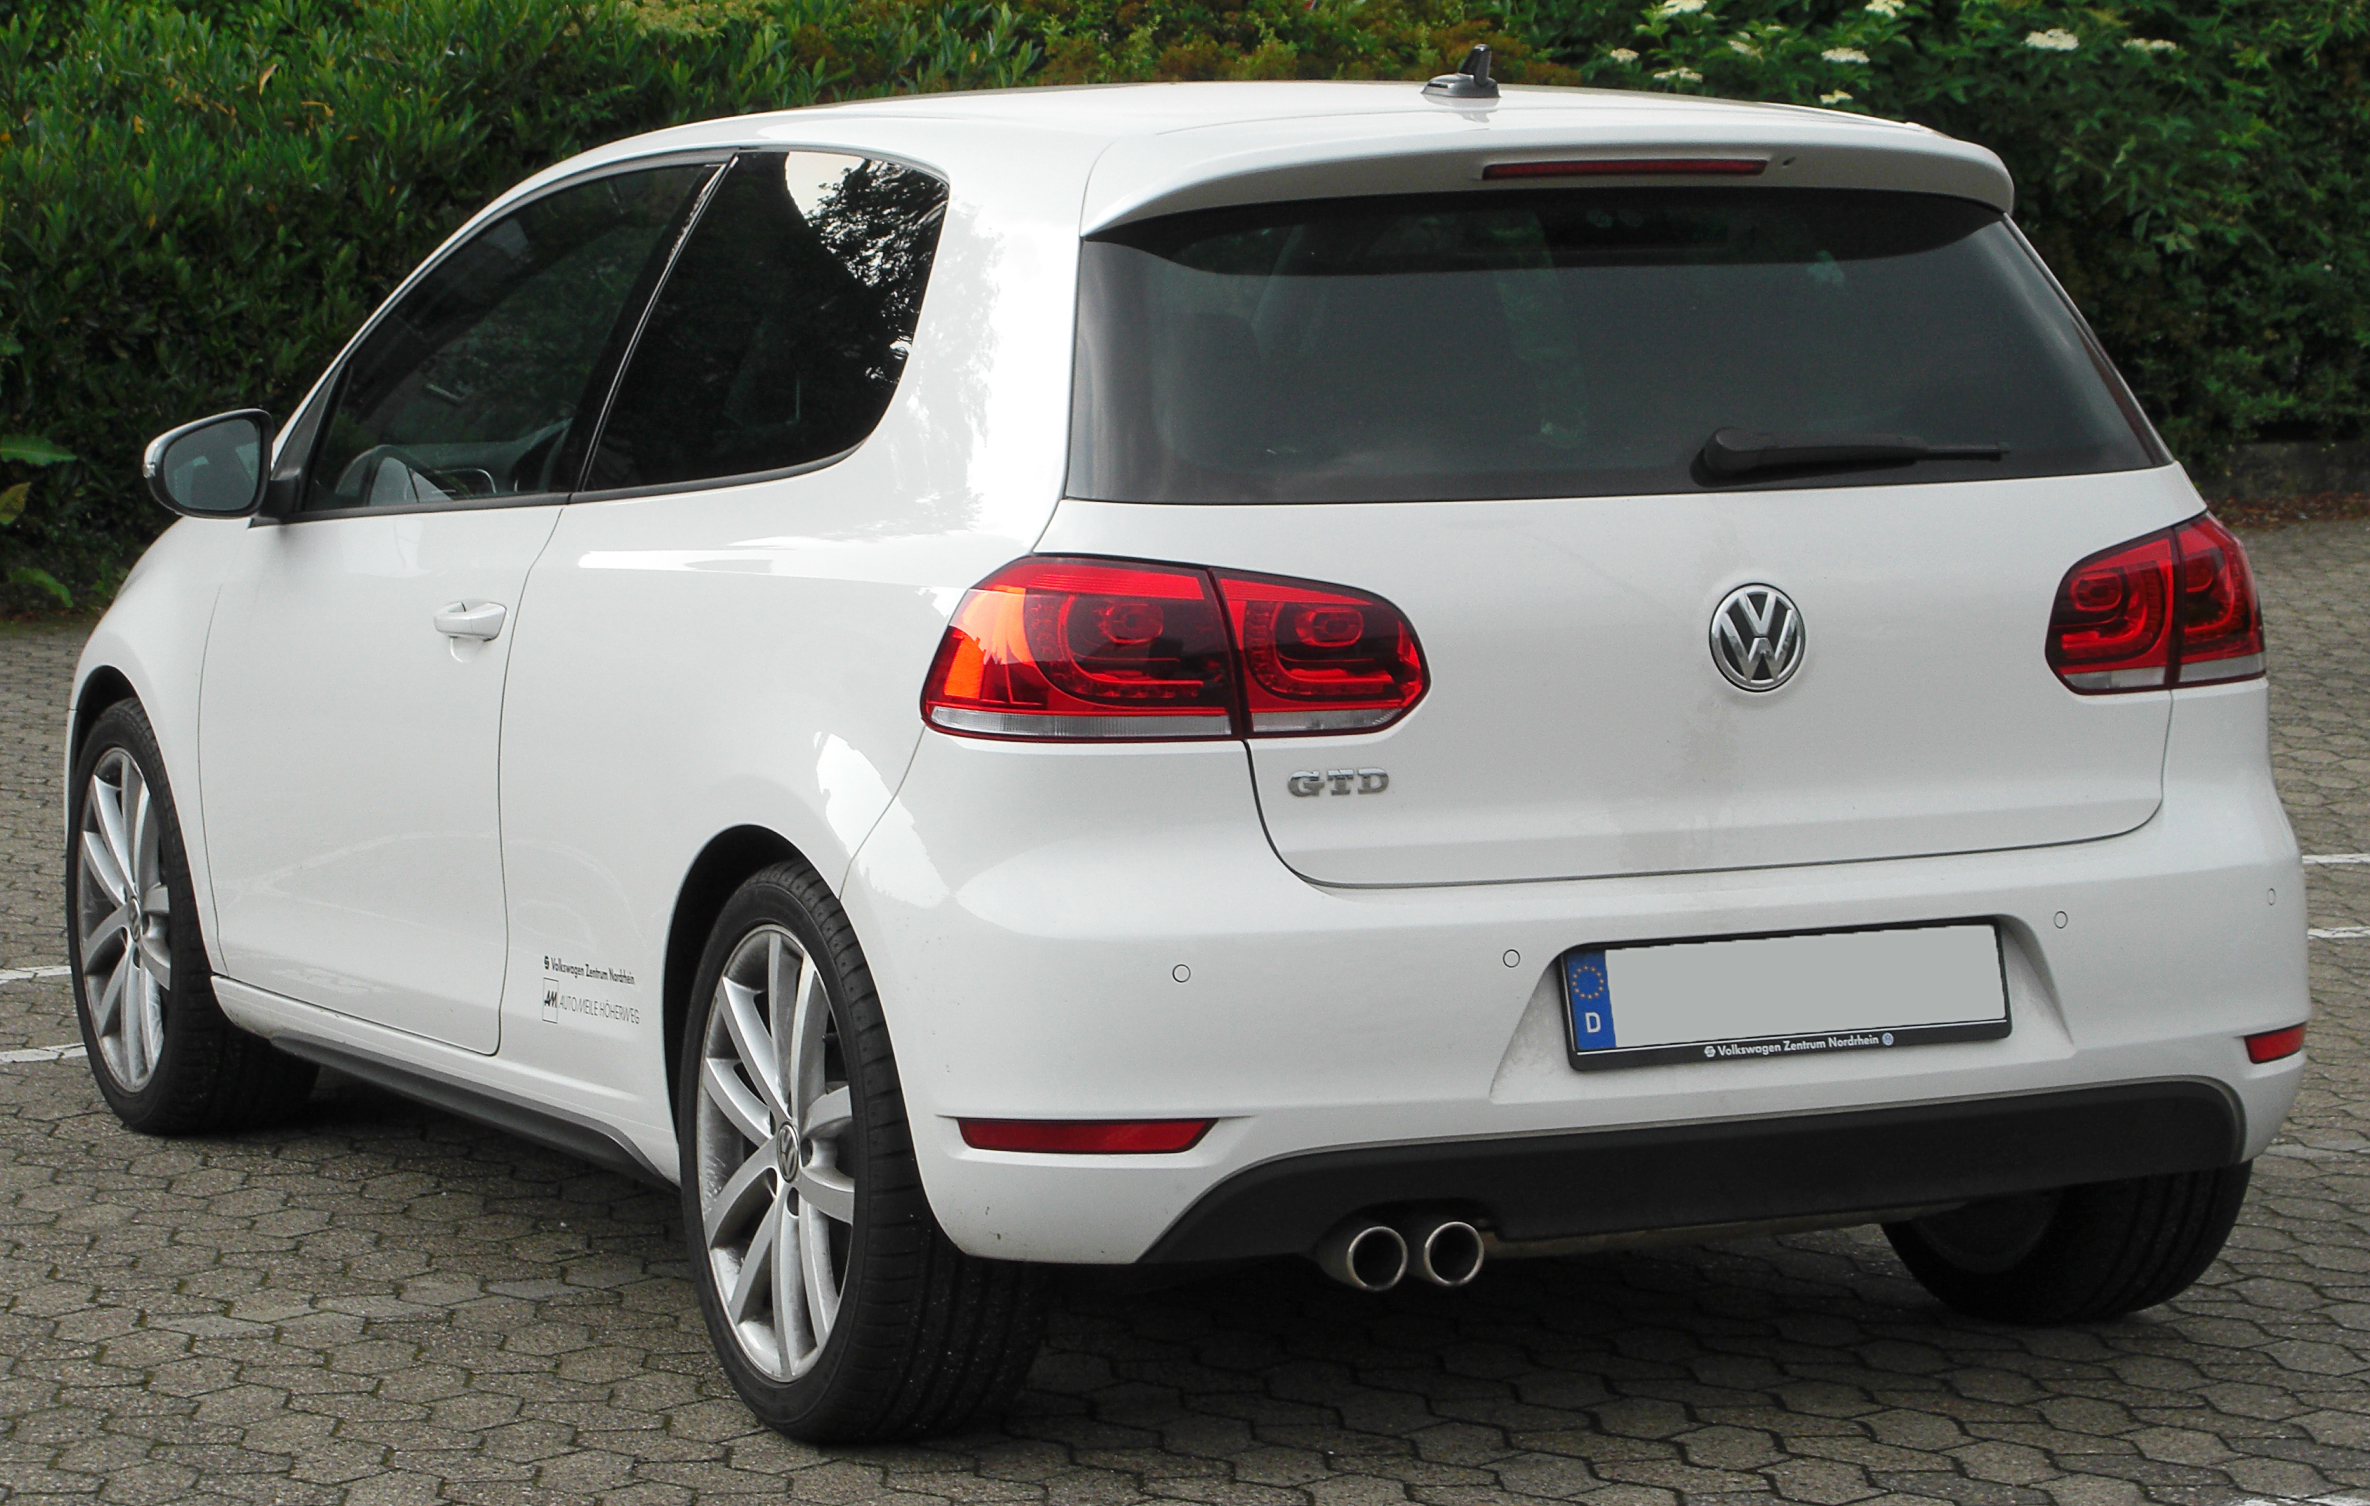 file vw golf vi gtd rear wikimedia commons. Black Bedroom Furniture Sets. Home Design Ideas